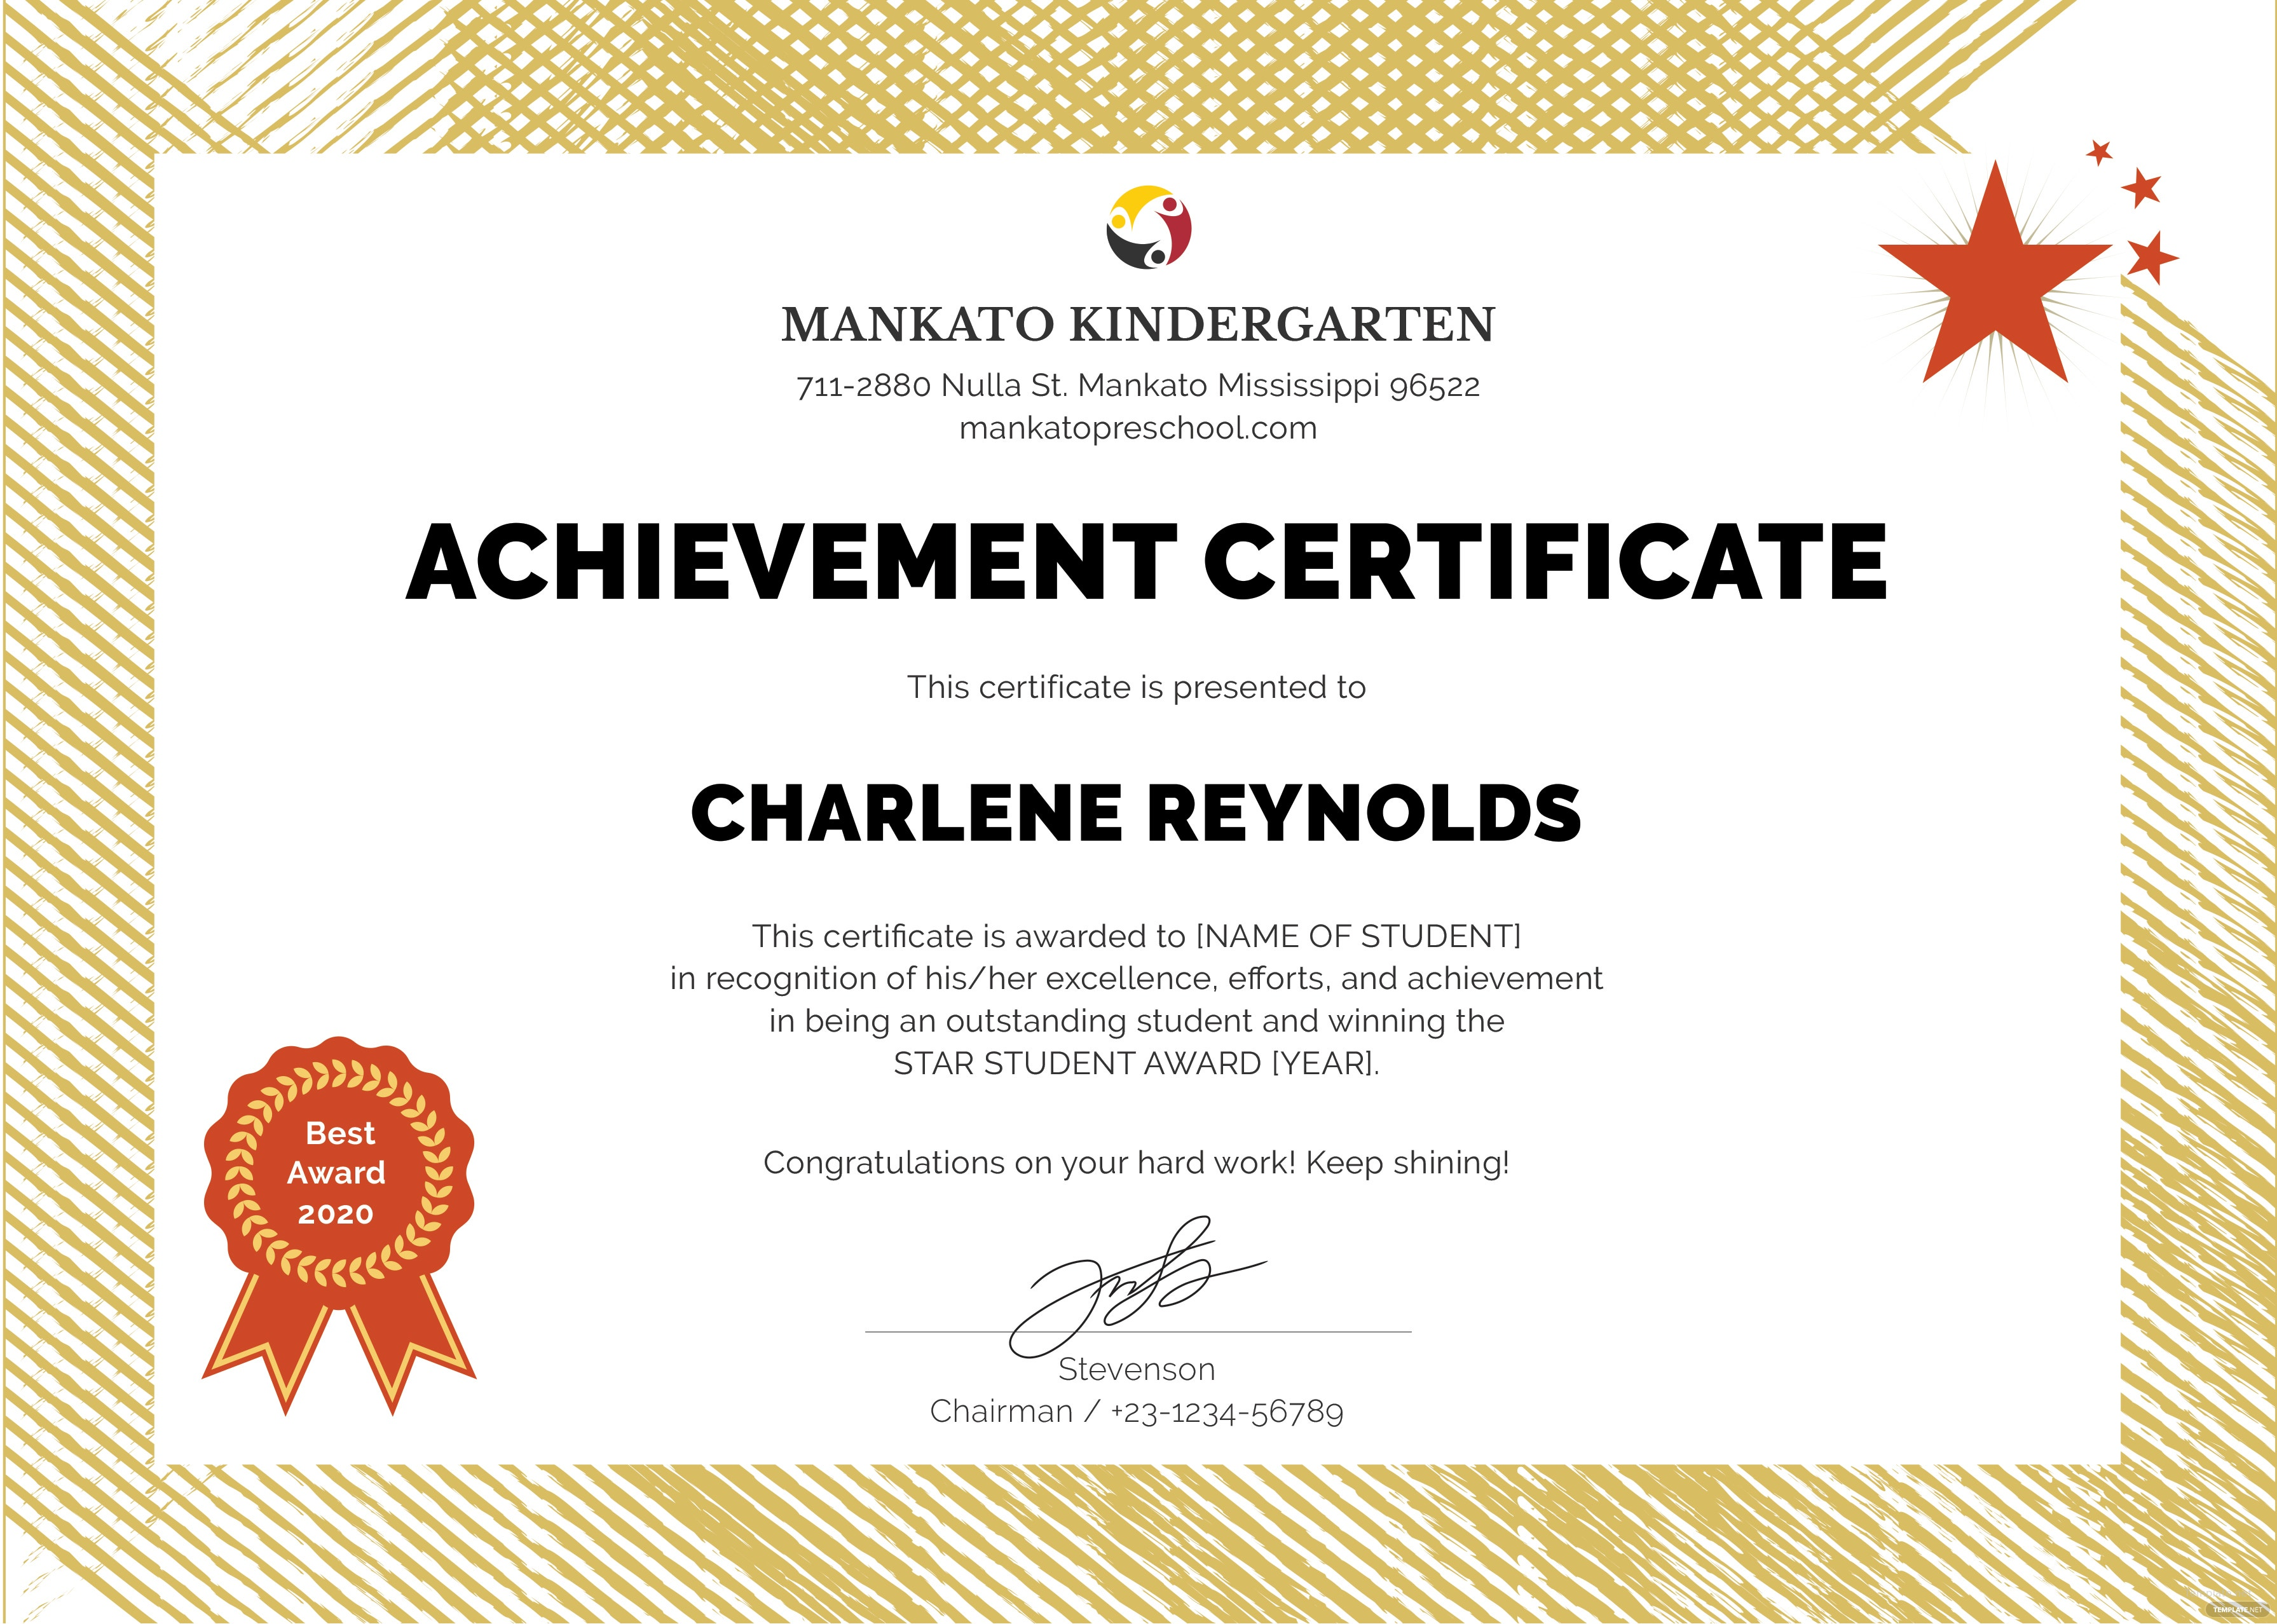 Free kindergarten certificate template in illustrator for This entitles the bearer to template certificate